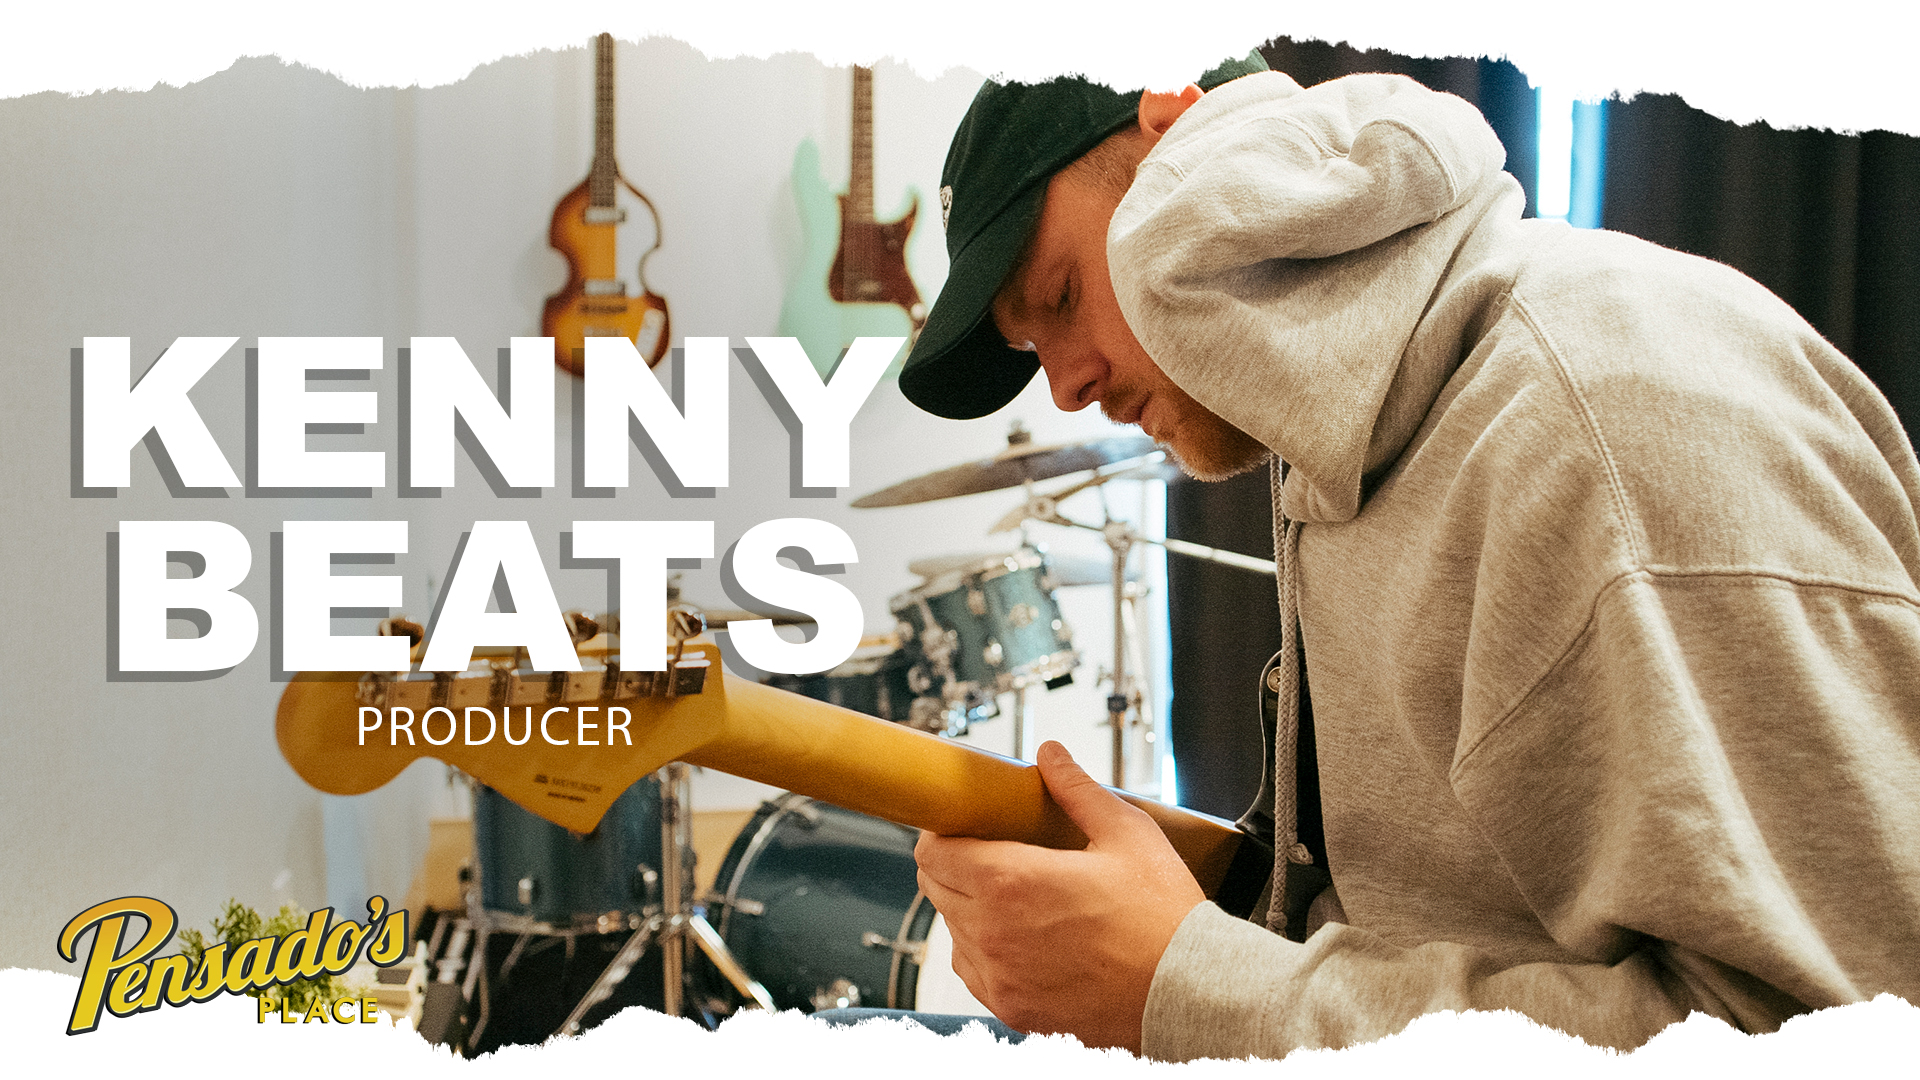 Producer, Kenny Beats